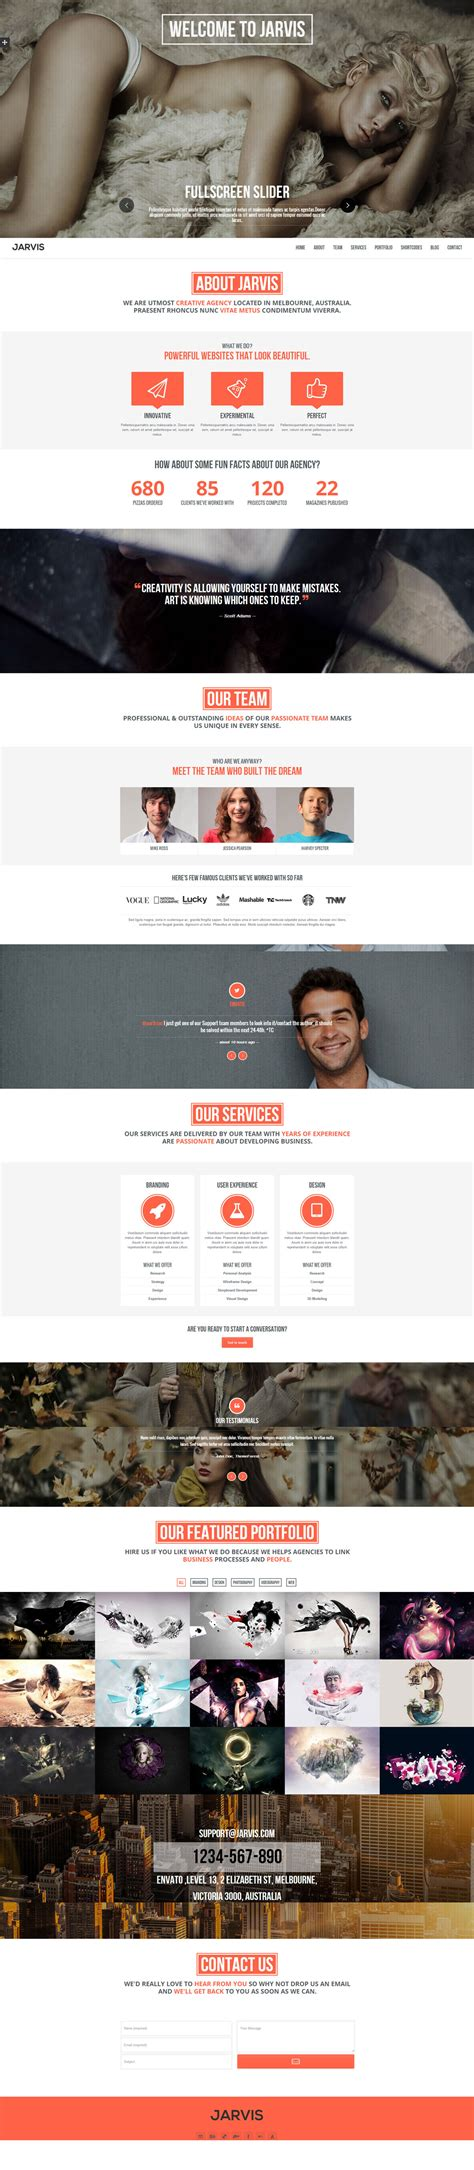 themeforest jarvis jarvis onepage parallax wordpress theme by